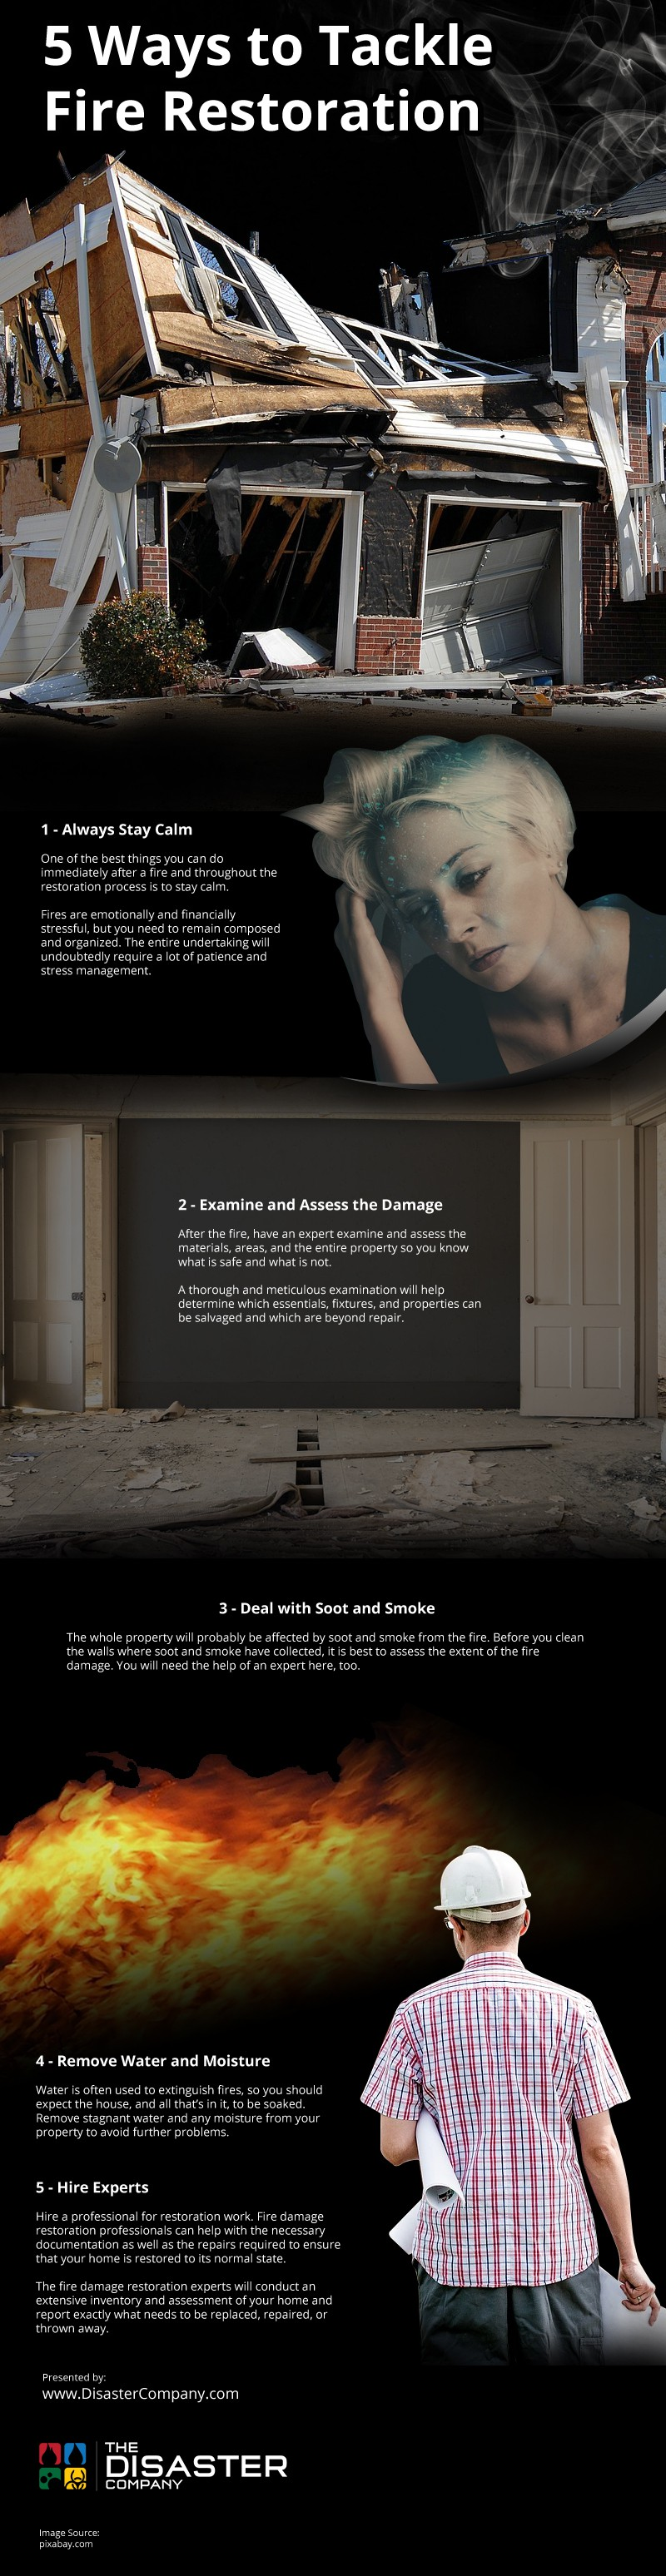 5 Ways to Tackle Fire Restoration [infographic]